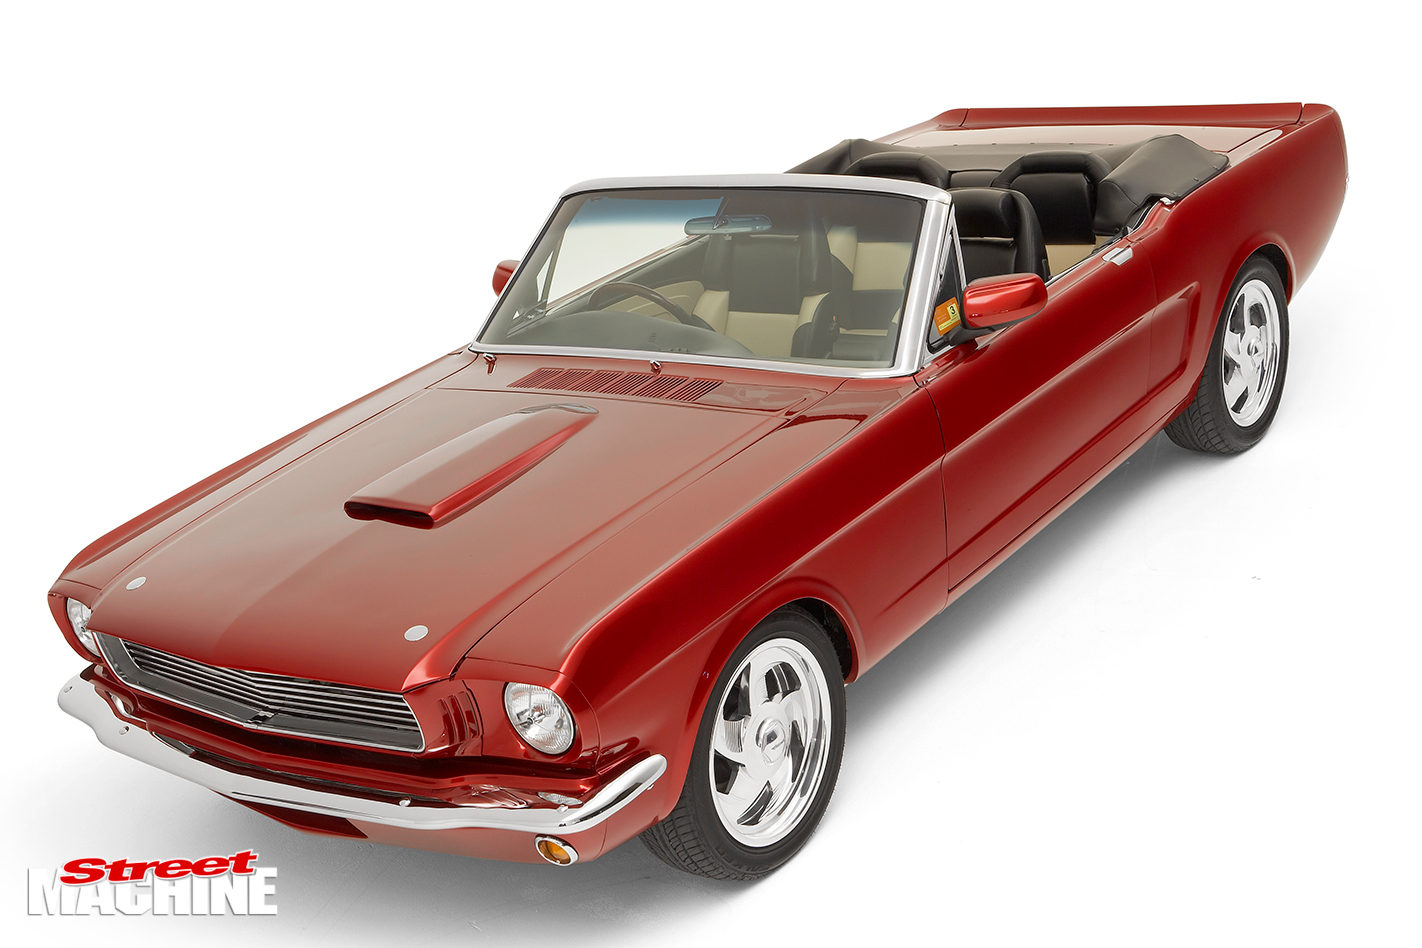 Marshall -Perron -Pro -Touring -Mustang -front -angle